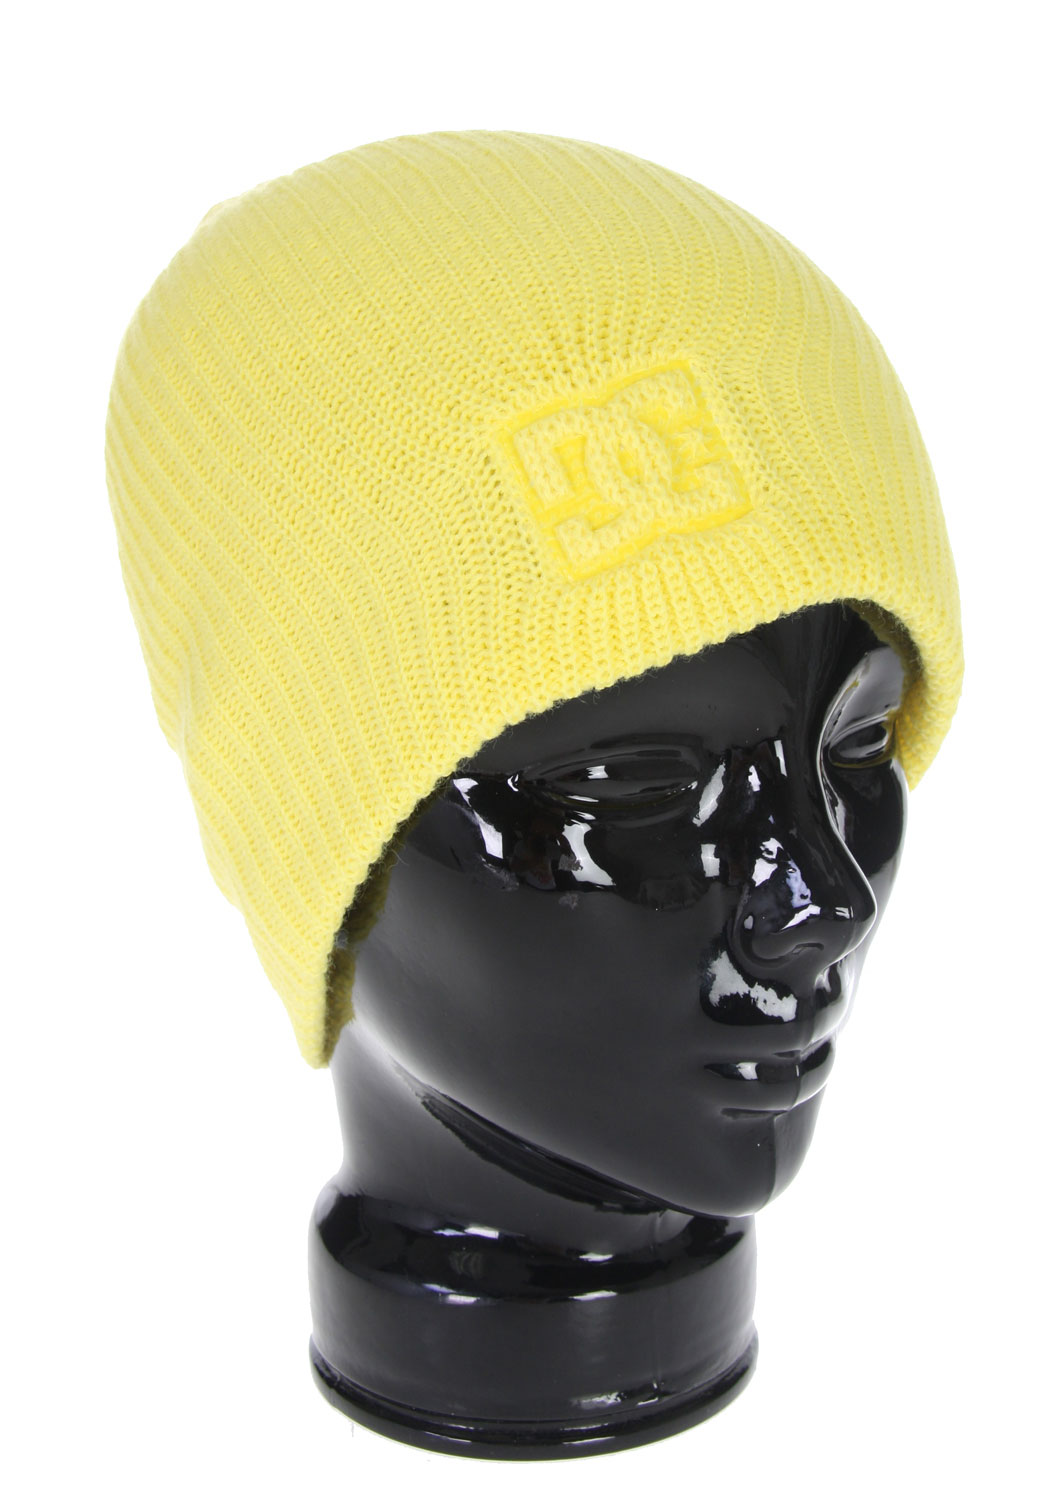 Looking for a beanie that looks as good as you do? That can be a hard task to accomplish, but this DC Yepa Beanie will be able to pull that off for you. It's an amazing looking simple design that will flow great with anyone's look. It offers a real simple knitted design that flows vertically and has a great DC logo front and center. It's a standard fit, so it's nothing crazy or real fancy, just a real simple great looking beanie, that will offer all the warmth in the world when you are facing the winter weather this season.Key Features of the DC Yepa Beanie Fiery Red: 100% Acrylic Chunky Rib Knit Beanie Standard Fit - $8.65